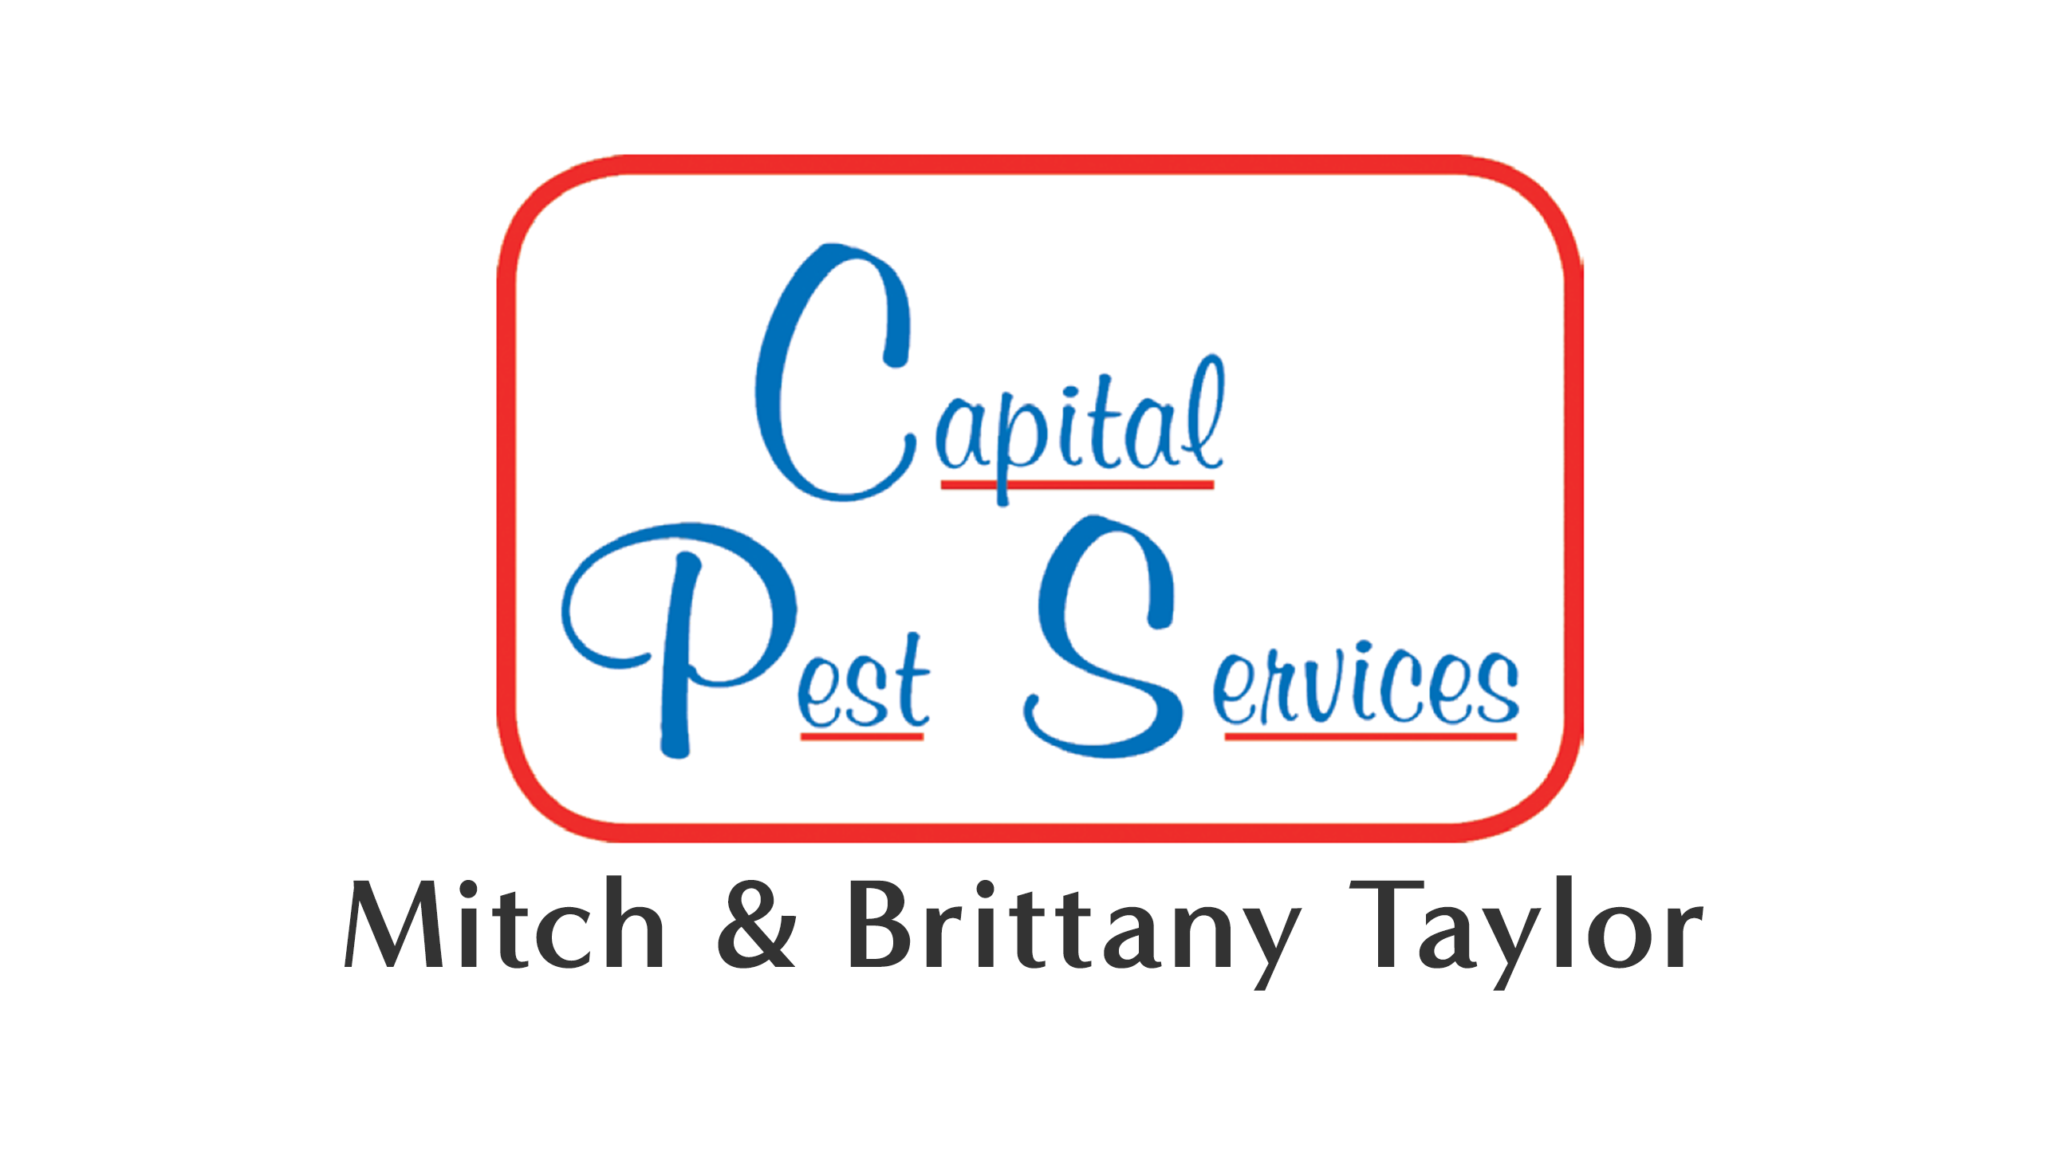 Capital Pest Services - Mitch & Brittany Taylor